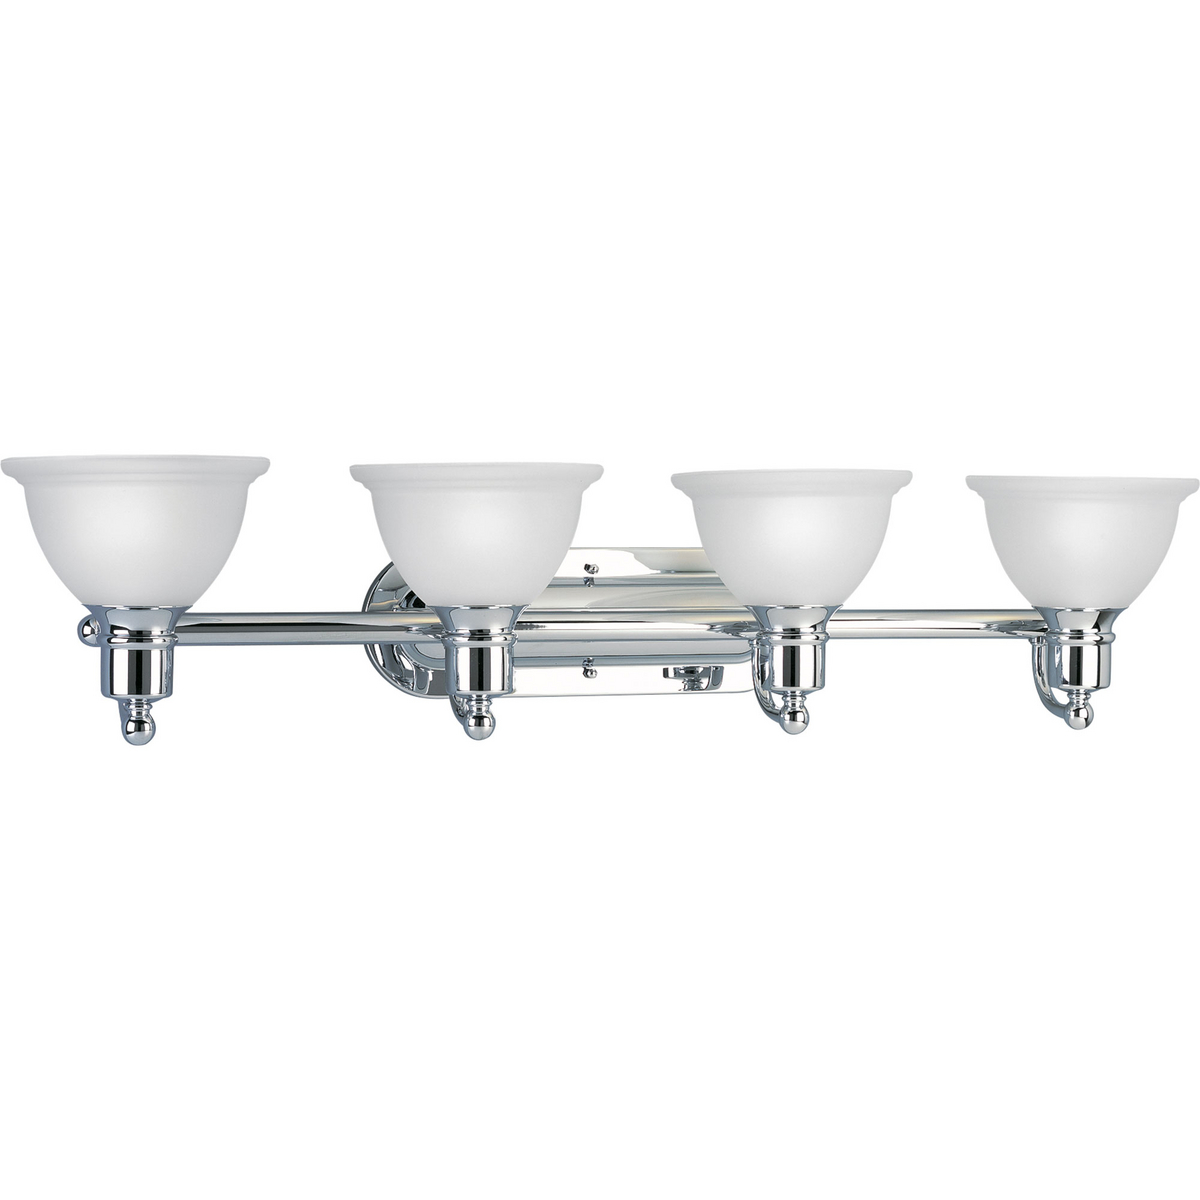 PRO P3164-15 Four Light Polished Chrome Etched Glass Vanity 4X100M